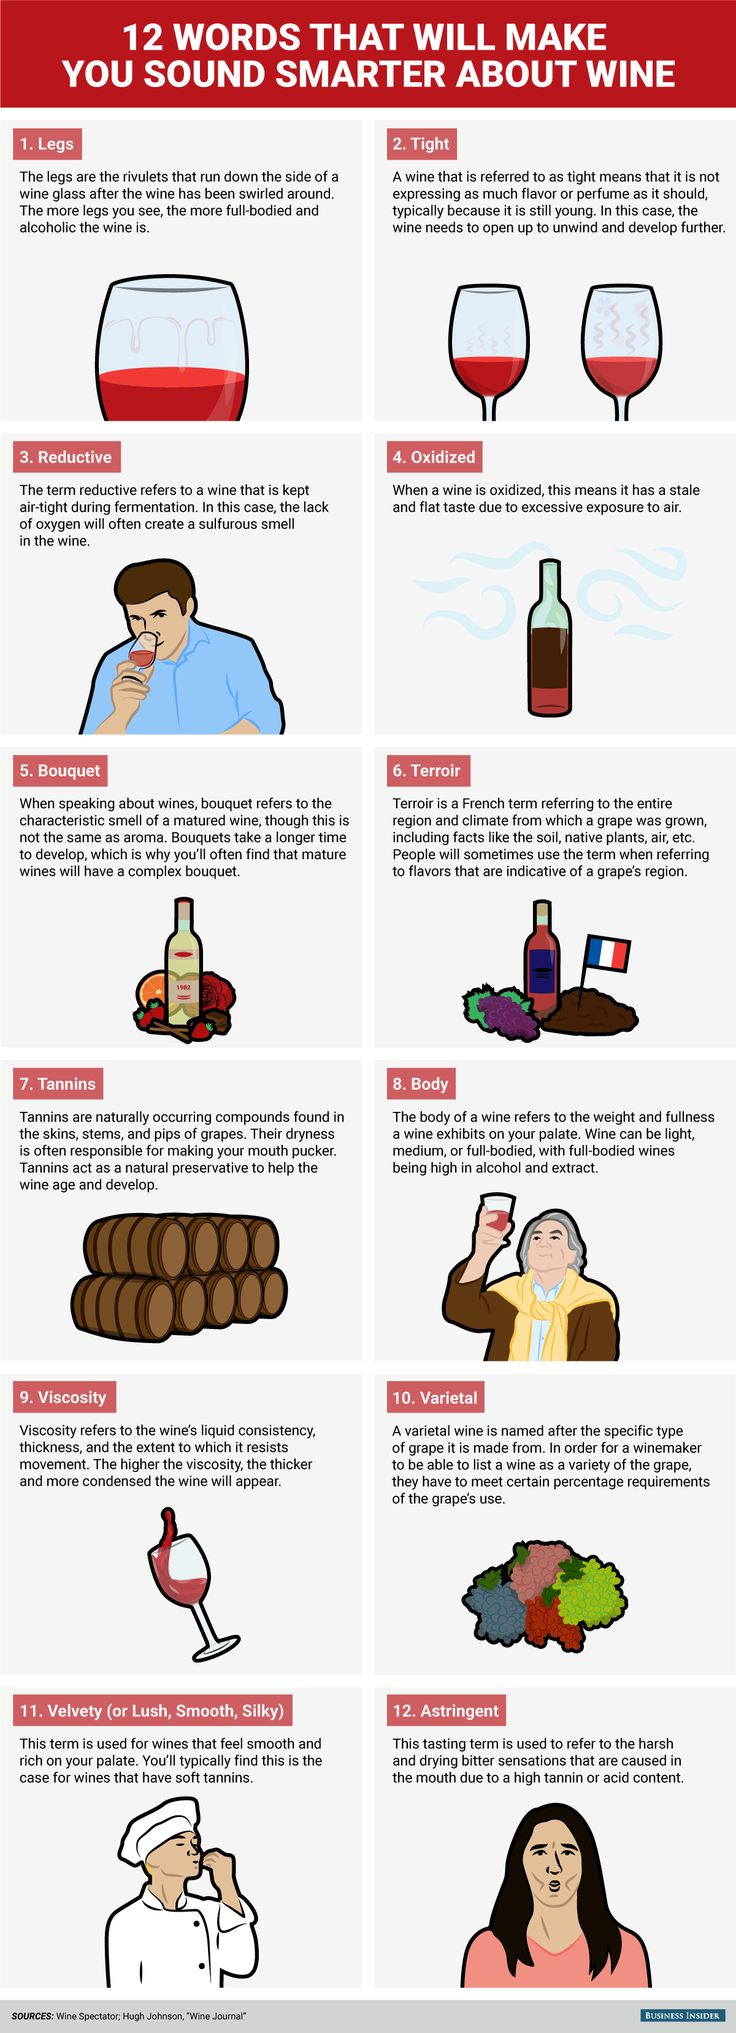 BI Graphics_Vocab to make you sound smarter about wine